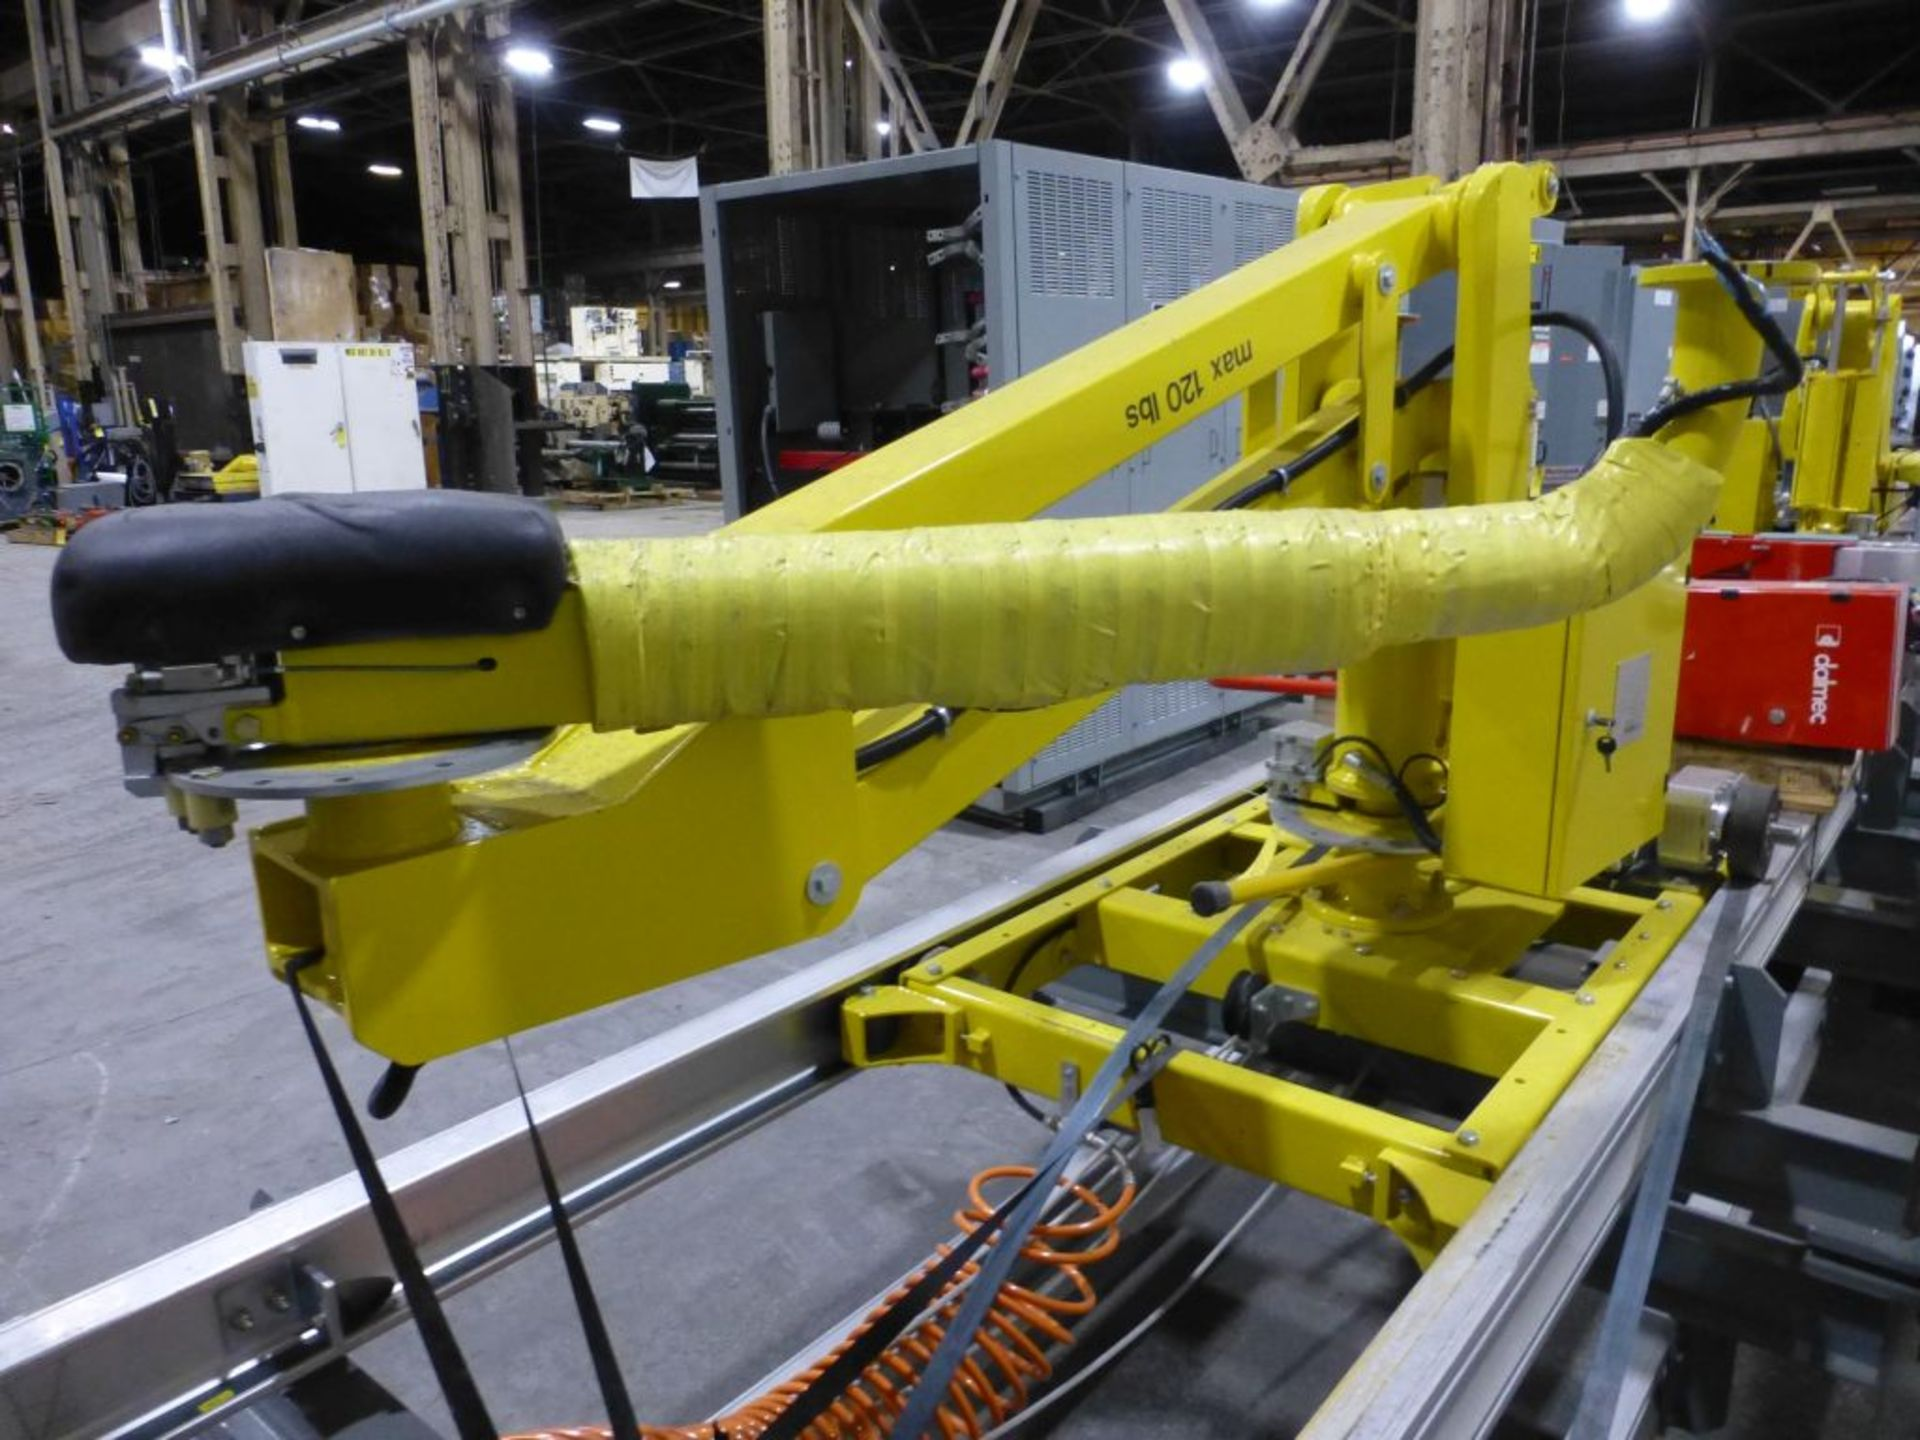 Dalmec Industrial Manipulator with Attachment | Type: PMS; Max Load 120 lbs; Pressure: .58 MPS; - Image 3 of 8